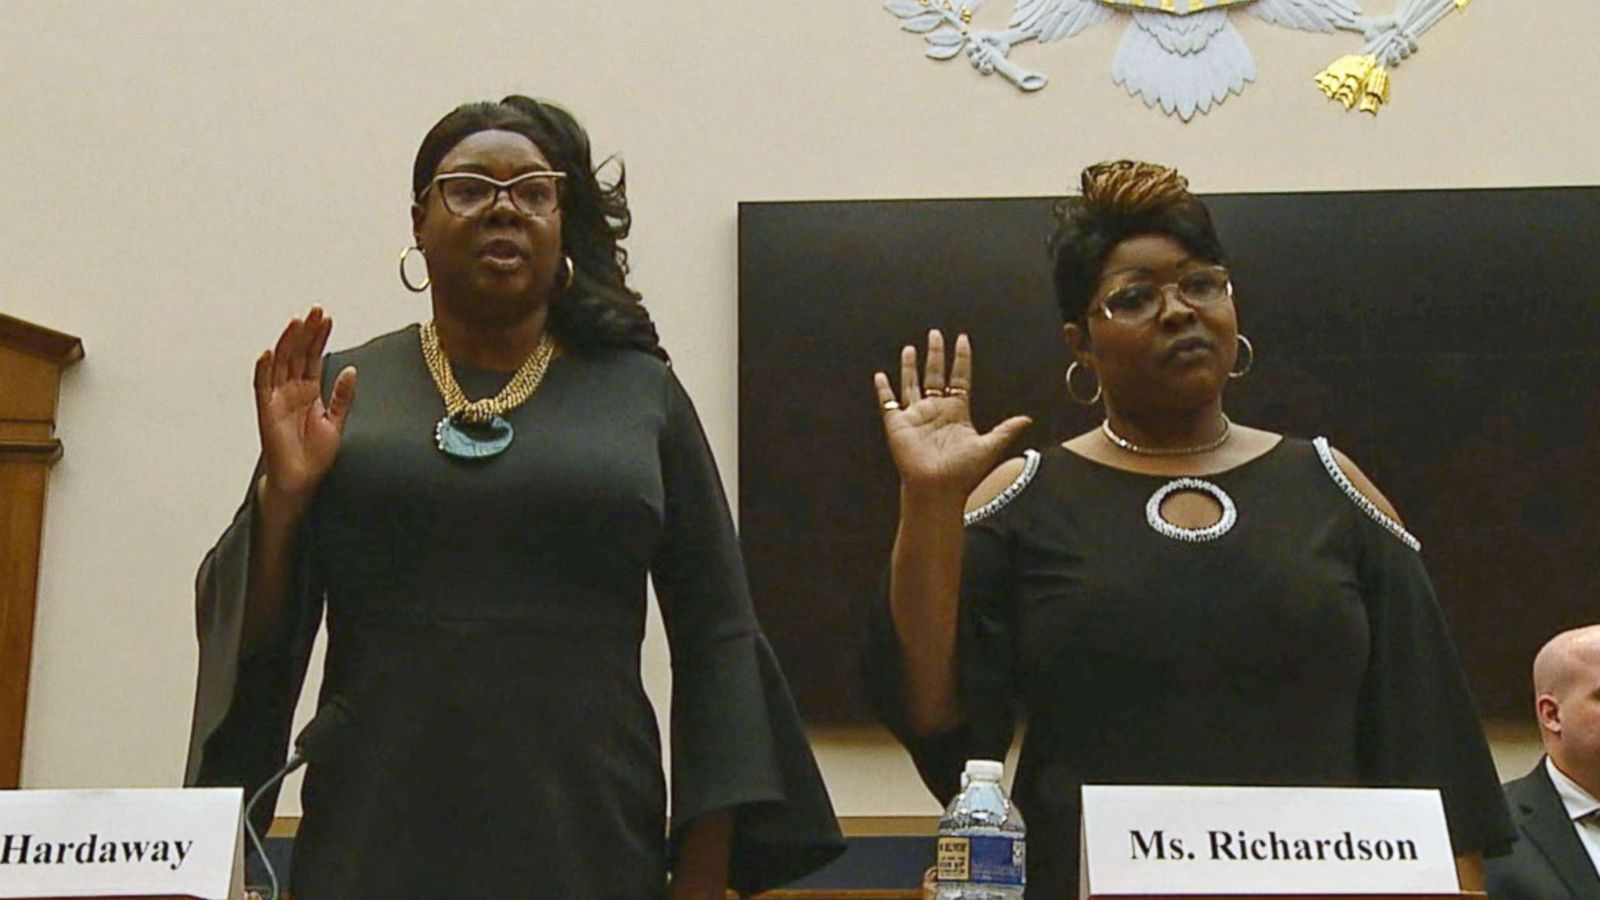 98b1f735f560f Diamond and Silk say Trump campaign never paid them, FEC filing shows  otherwise - ABC News